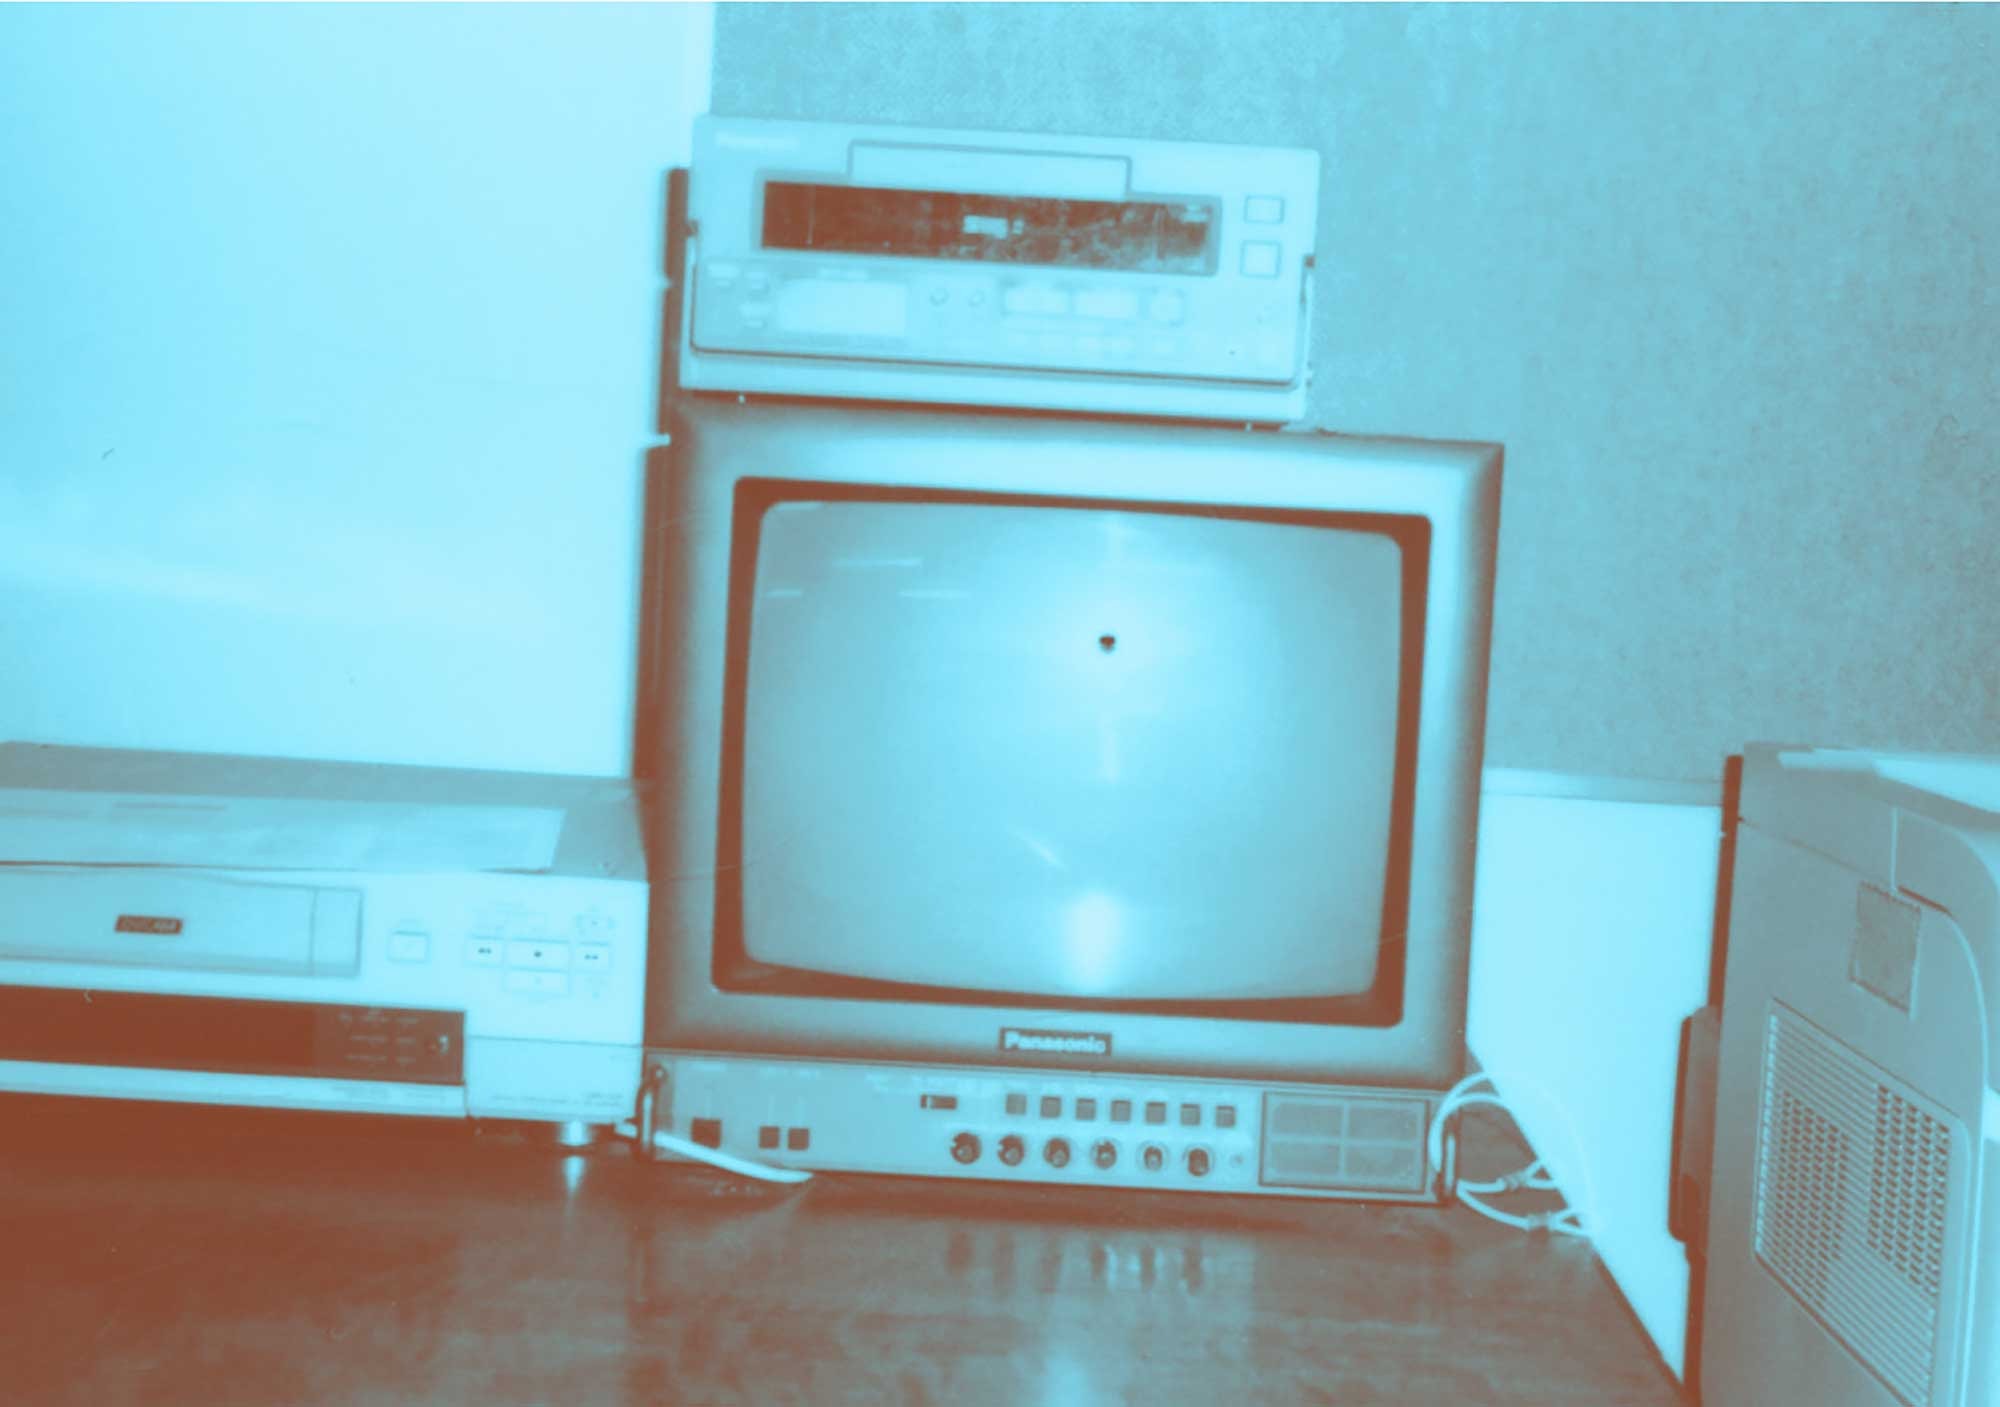 Image of a blank TV, a DVD player and video player.